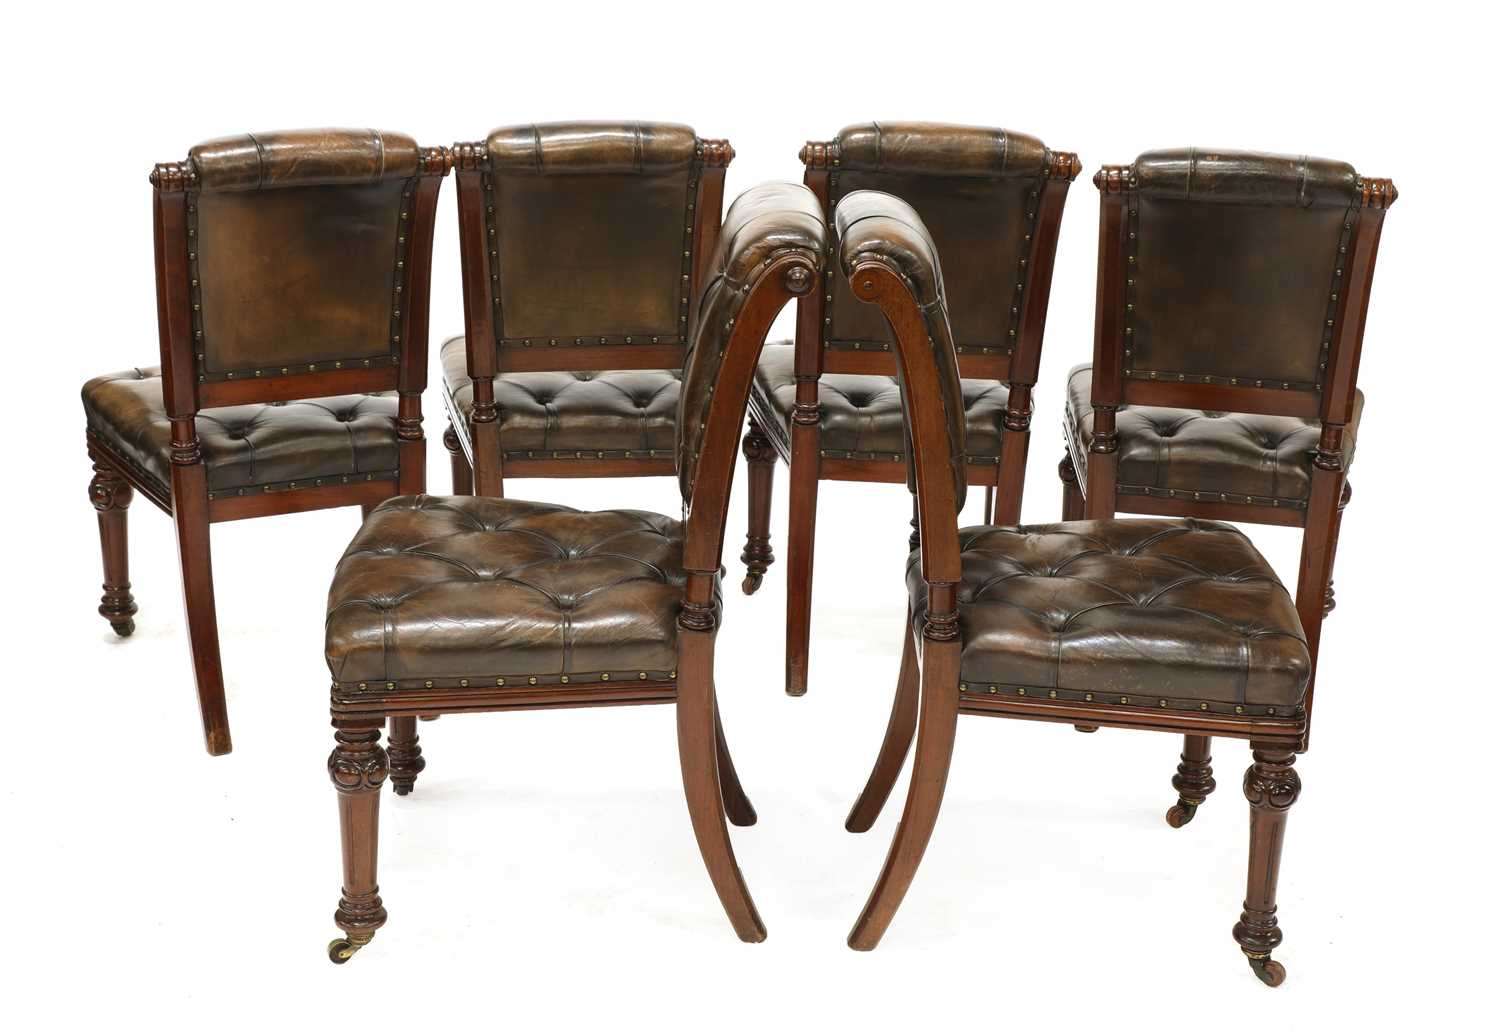 A set of six Victorian walnut and buttoned leather upholstered dining chairs, - Image 2 of 4